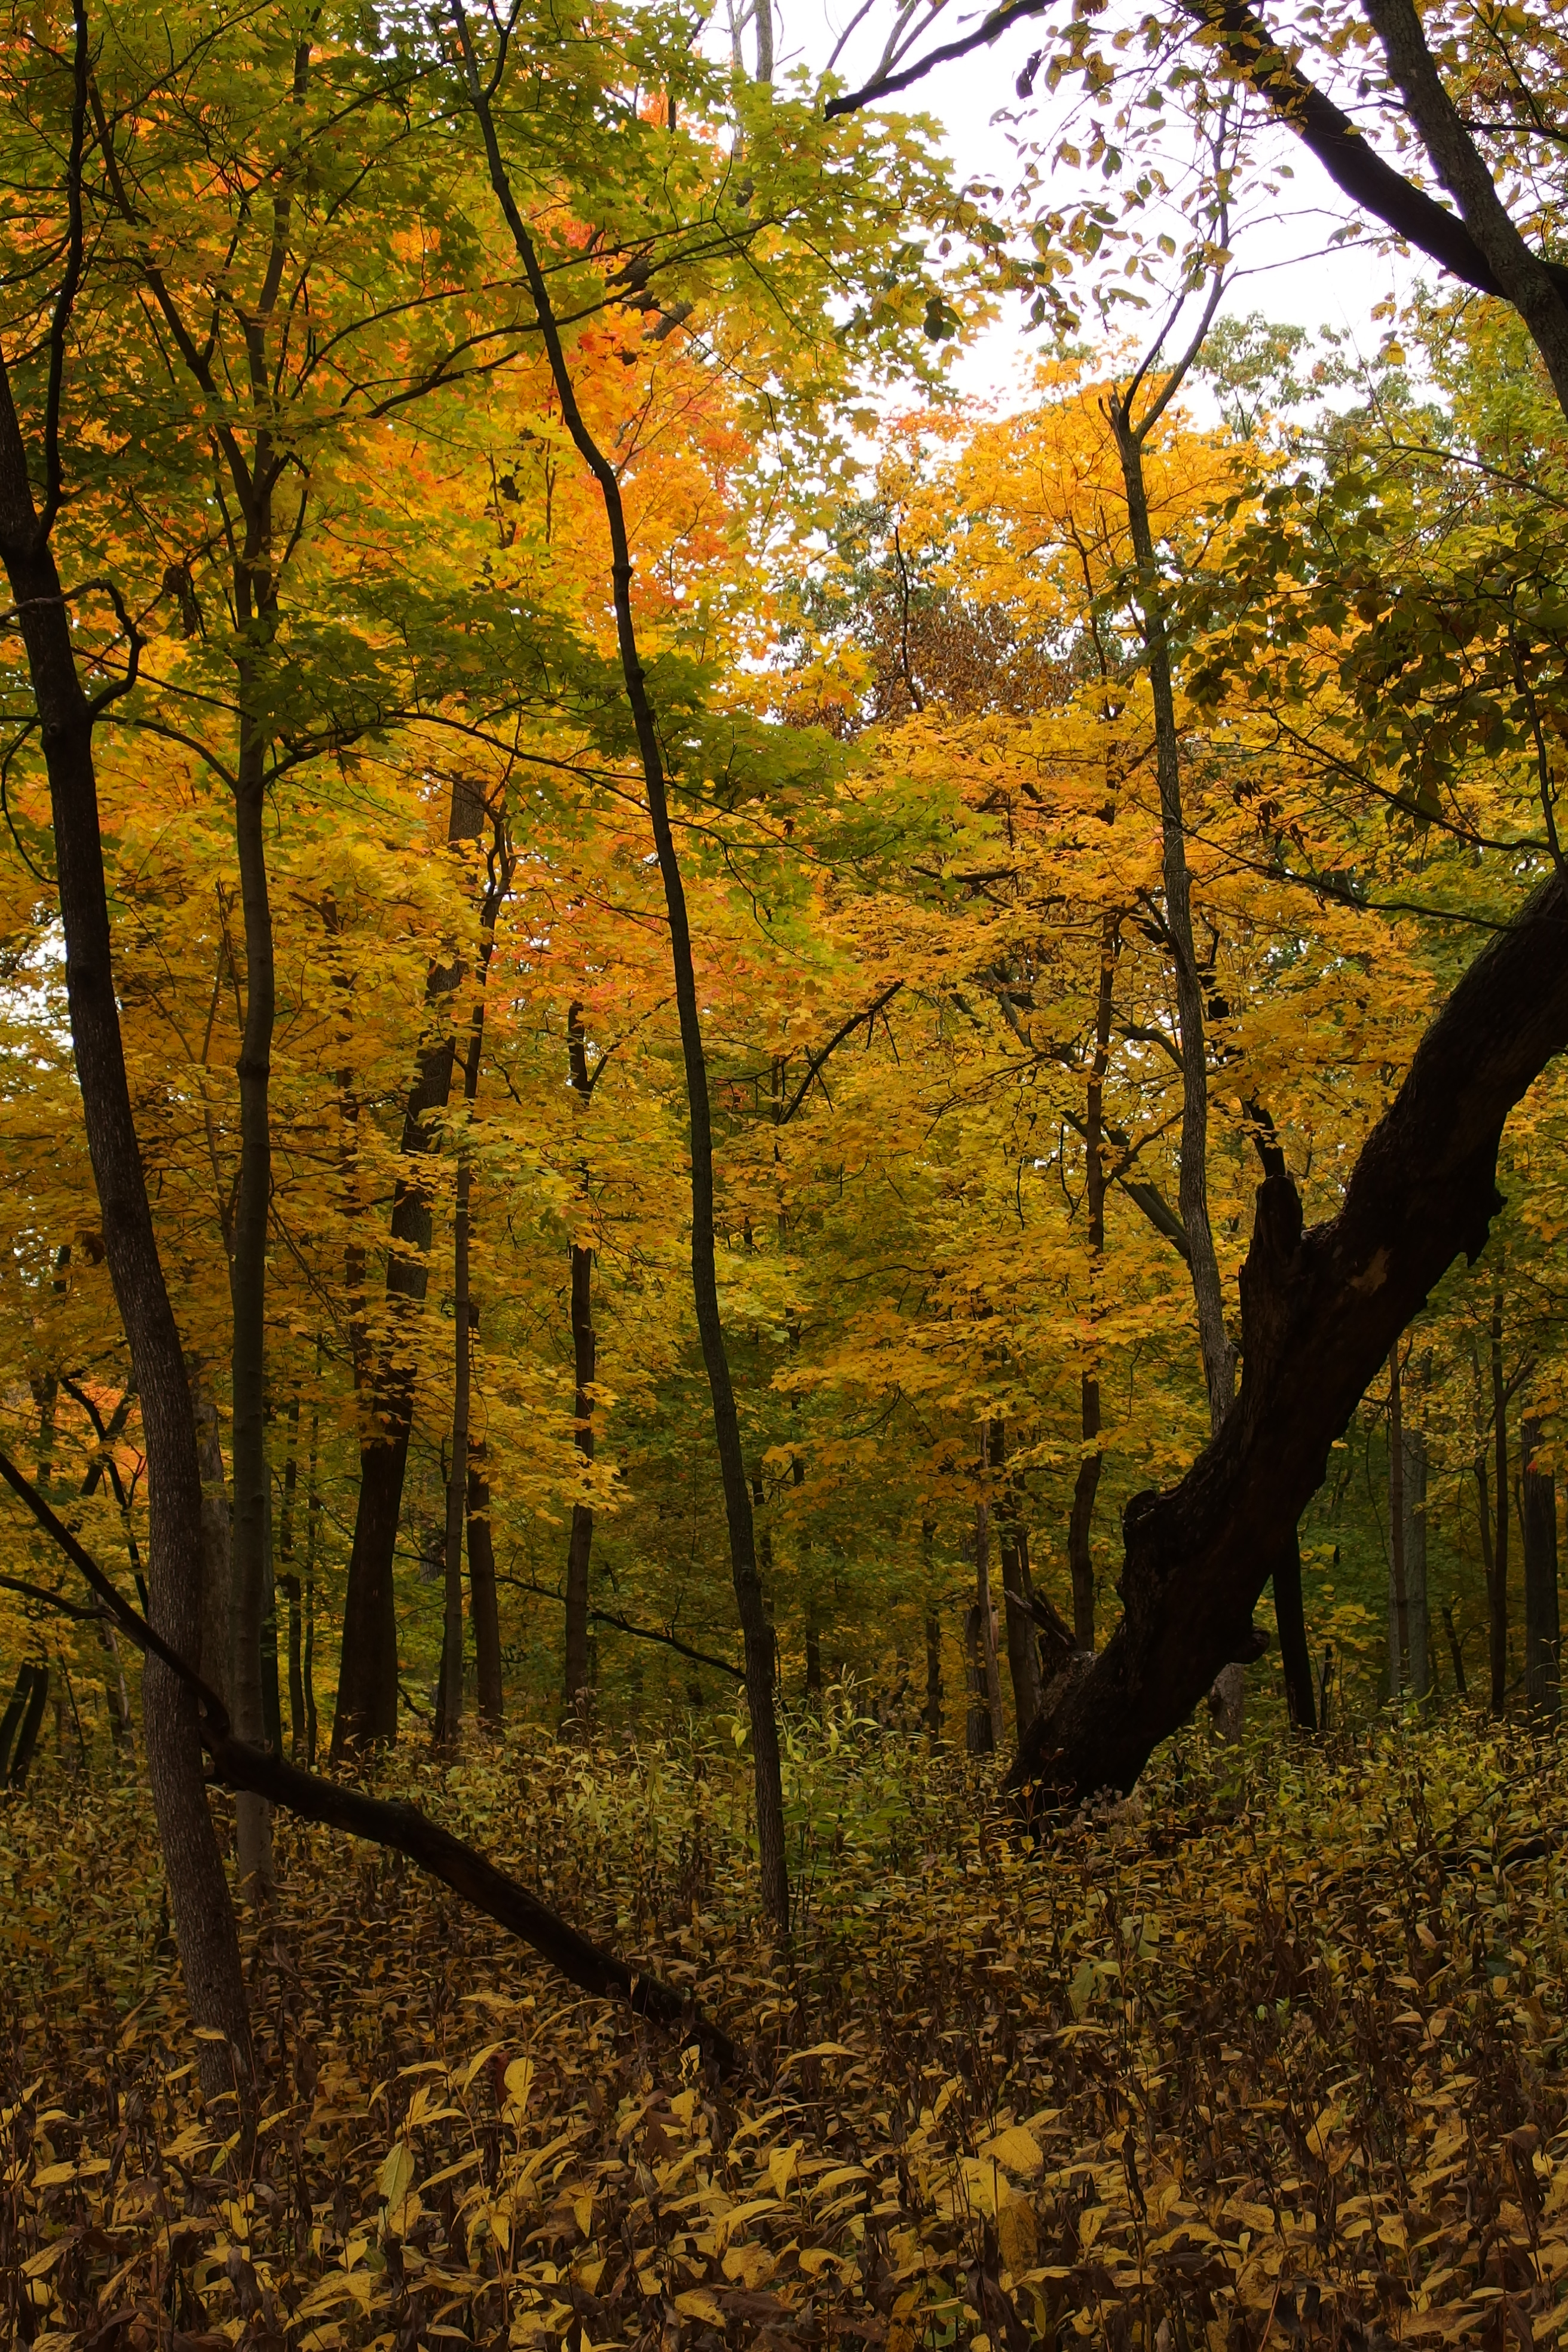 The woods on Pine Street near the Lederman Science Center are peaceful in fall. Photo: Dan Munger, AD